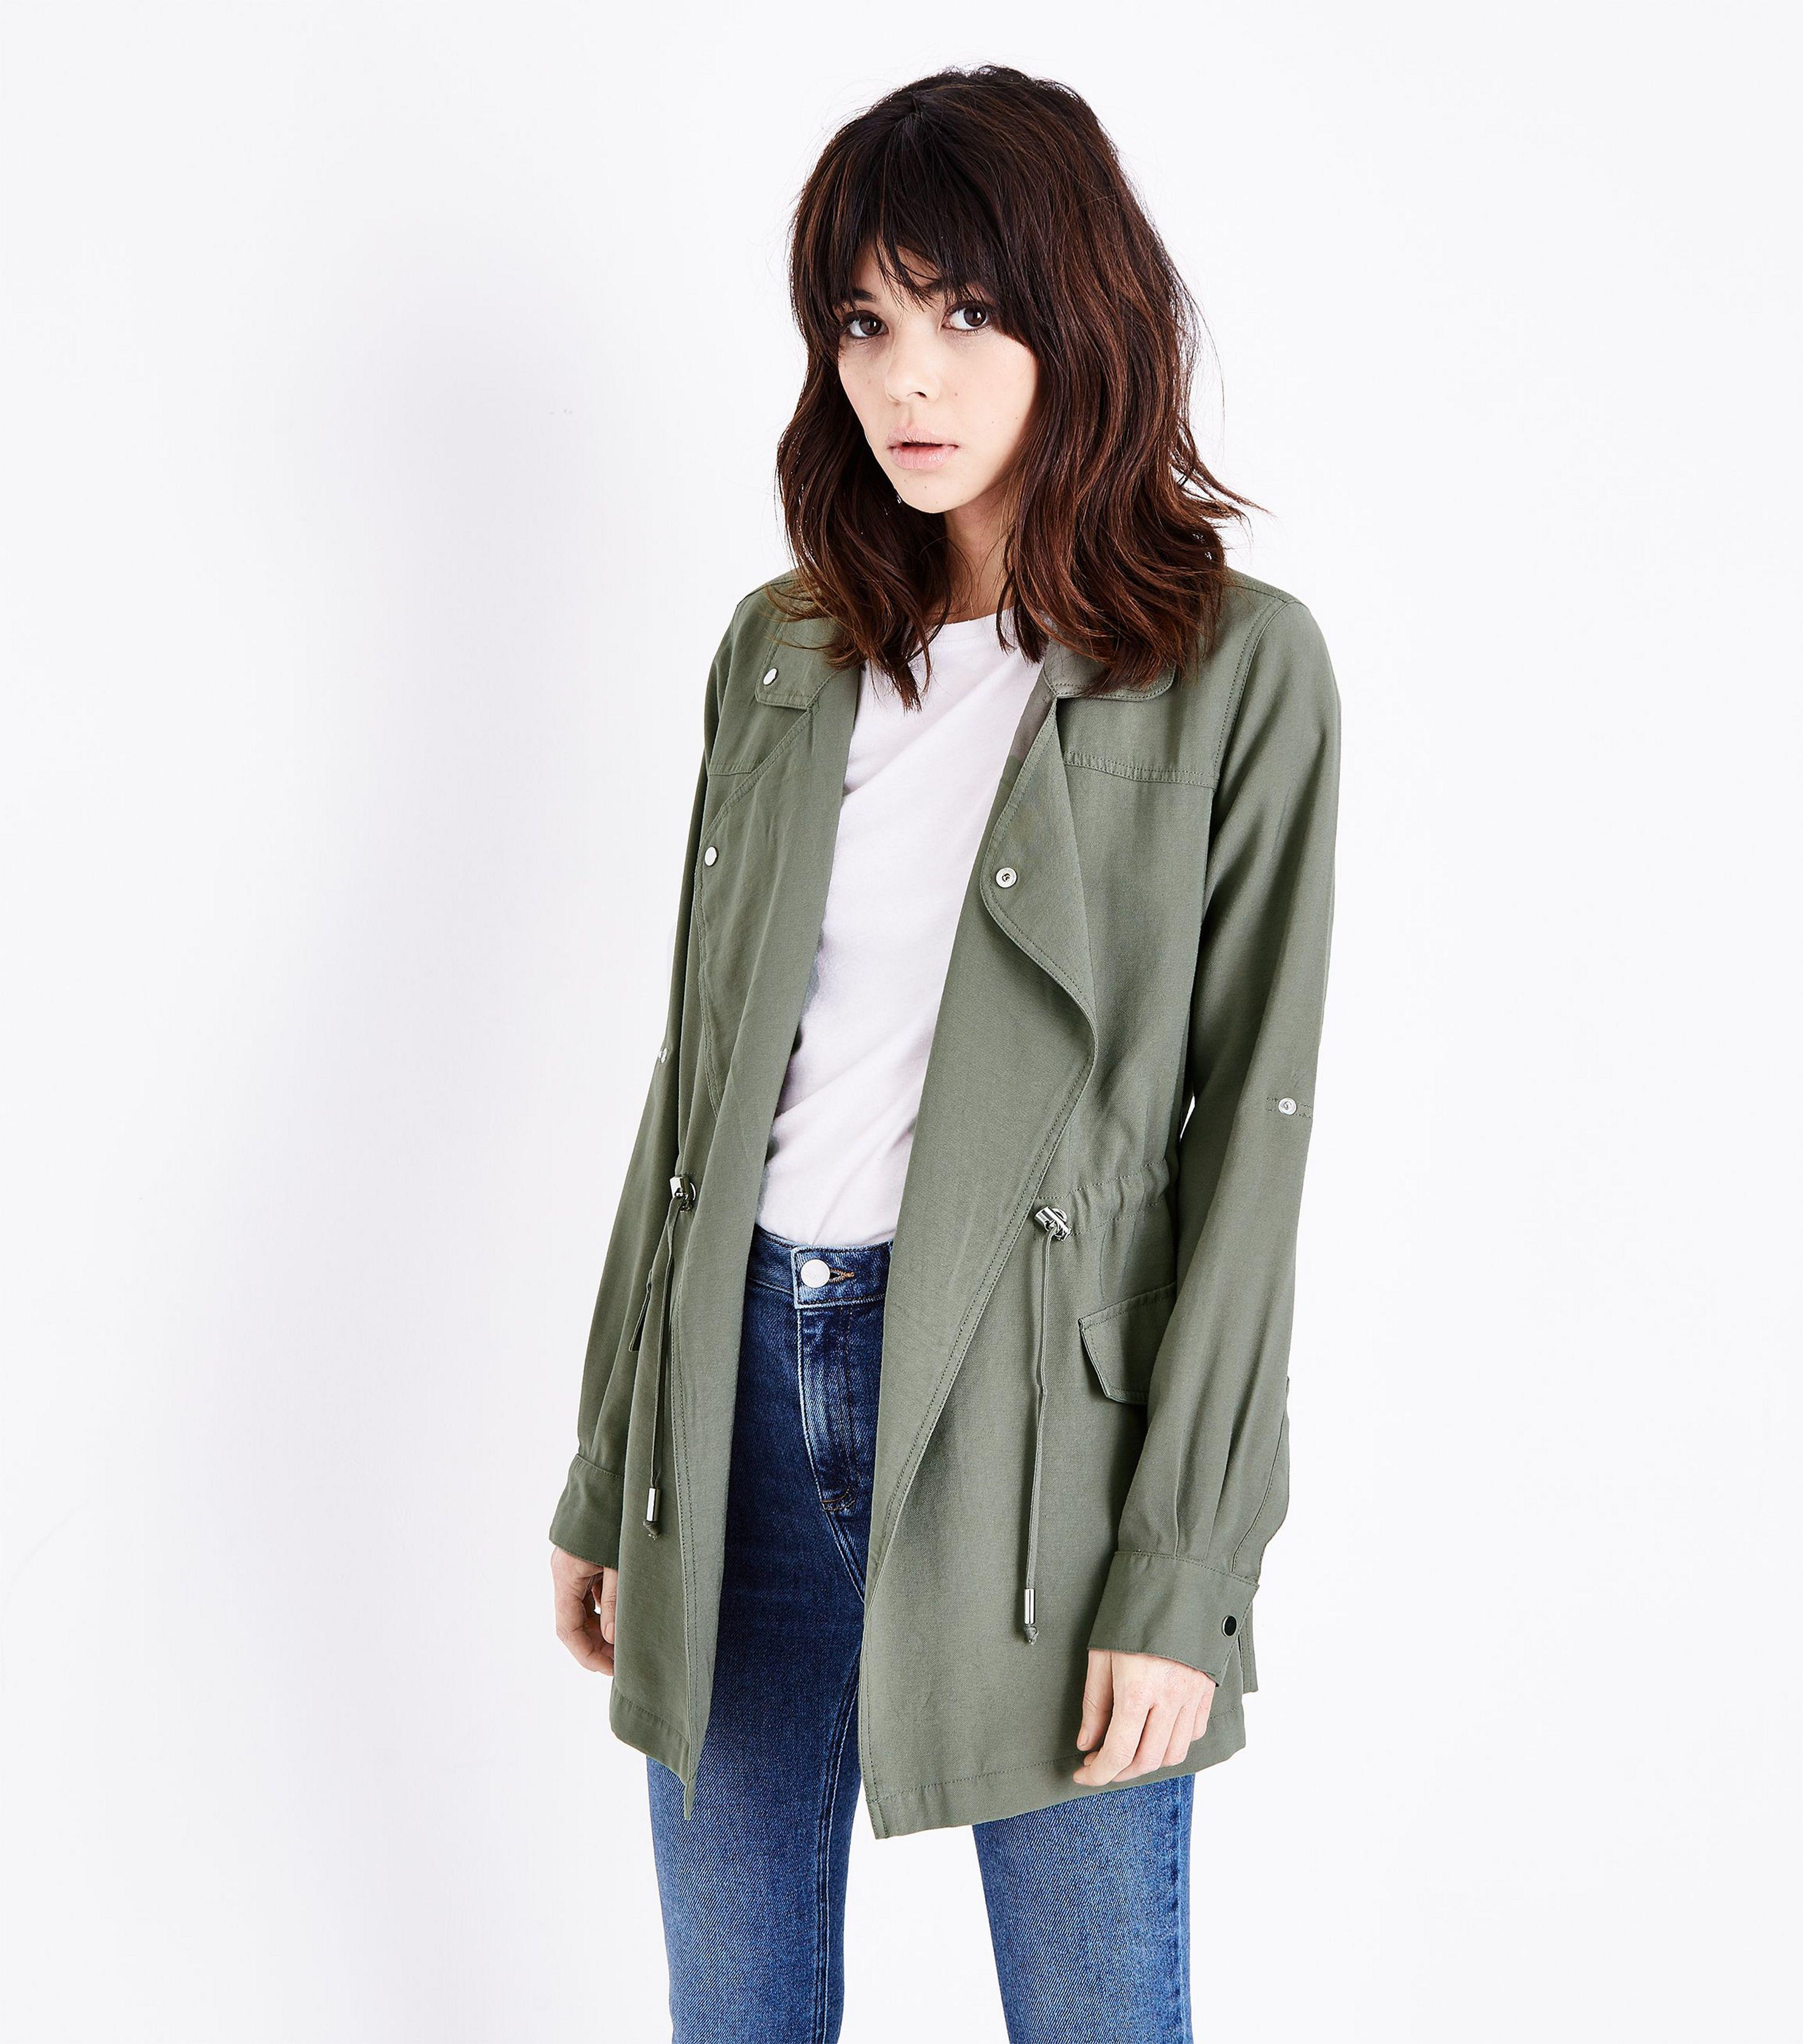 New Look Olive Green Waterfall Shacket In Green Lyst